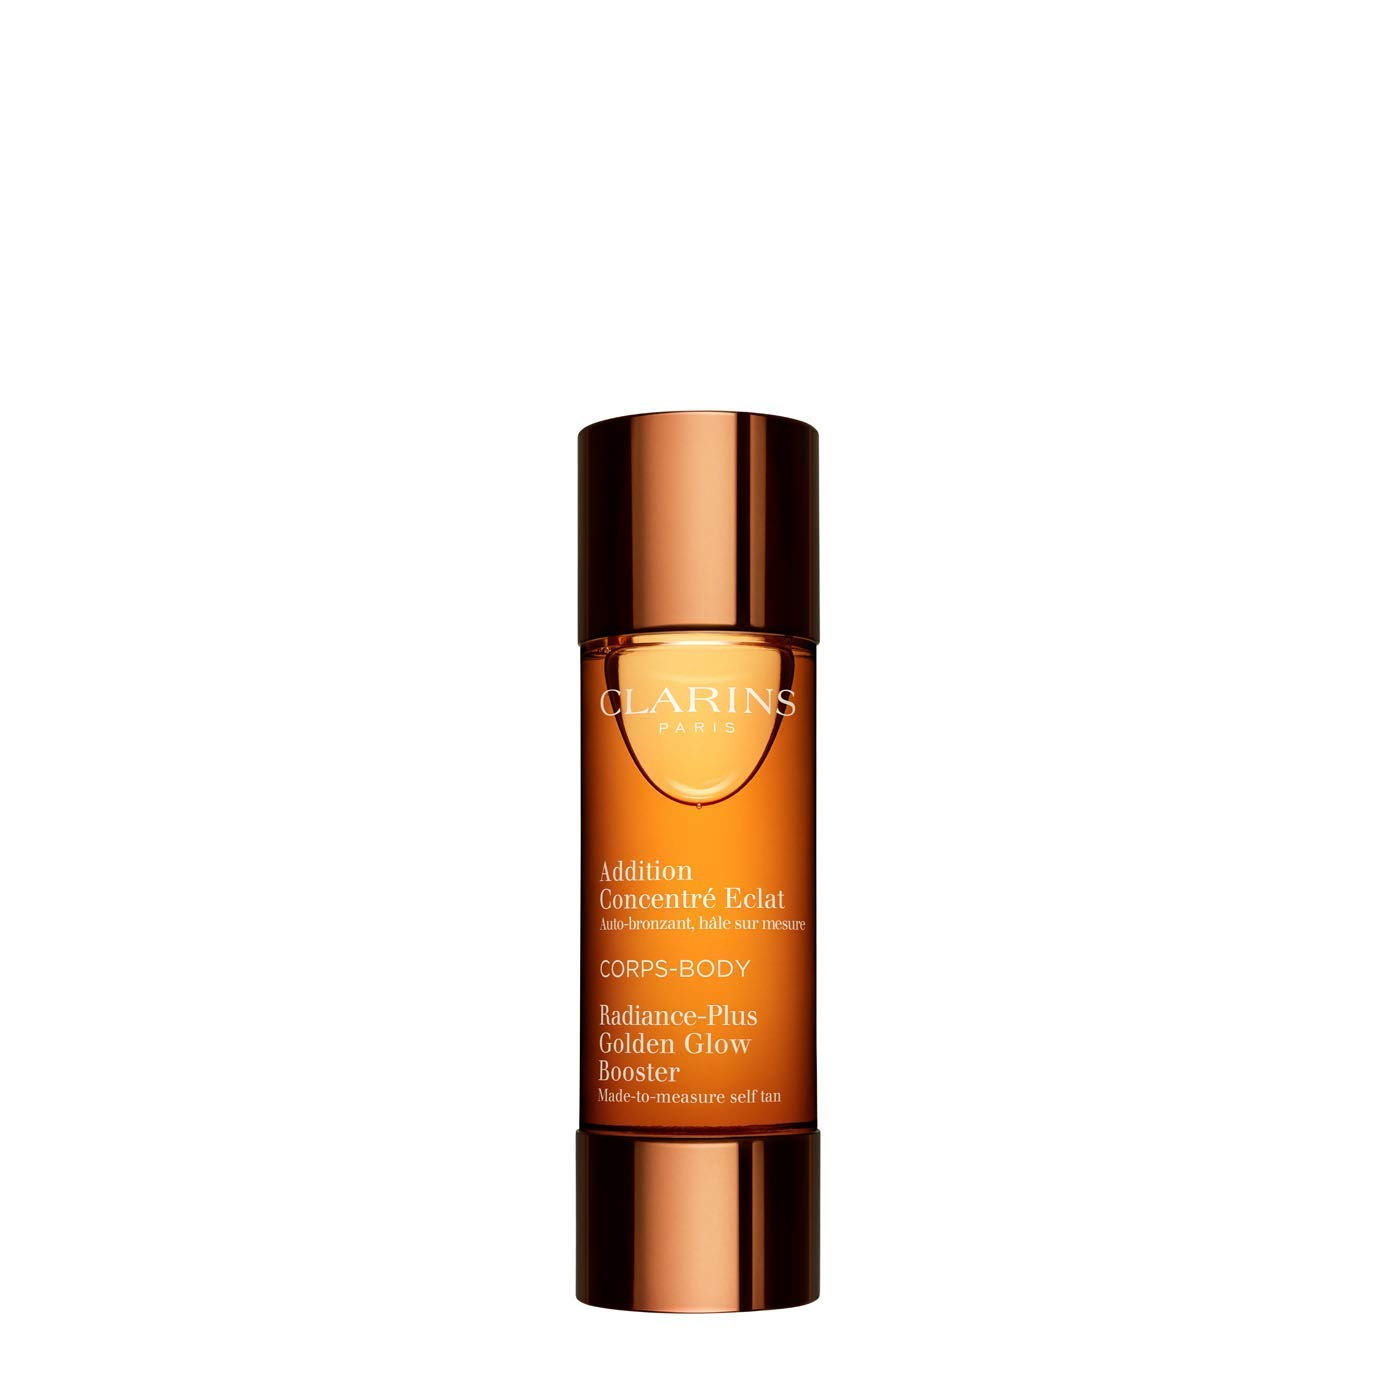 Amazon.com : Clarins Radiance-Plus Golden Glow Booster Self Tanning ...